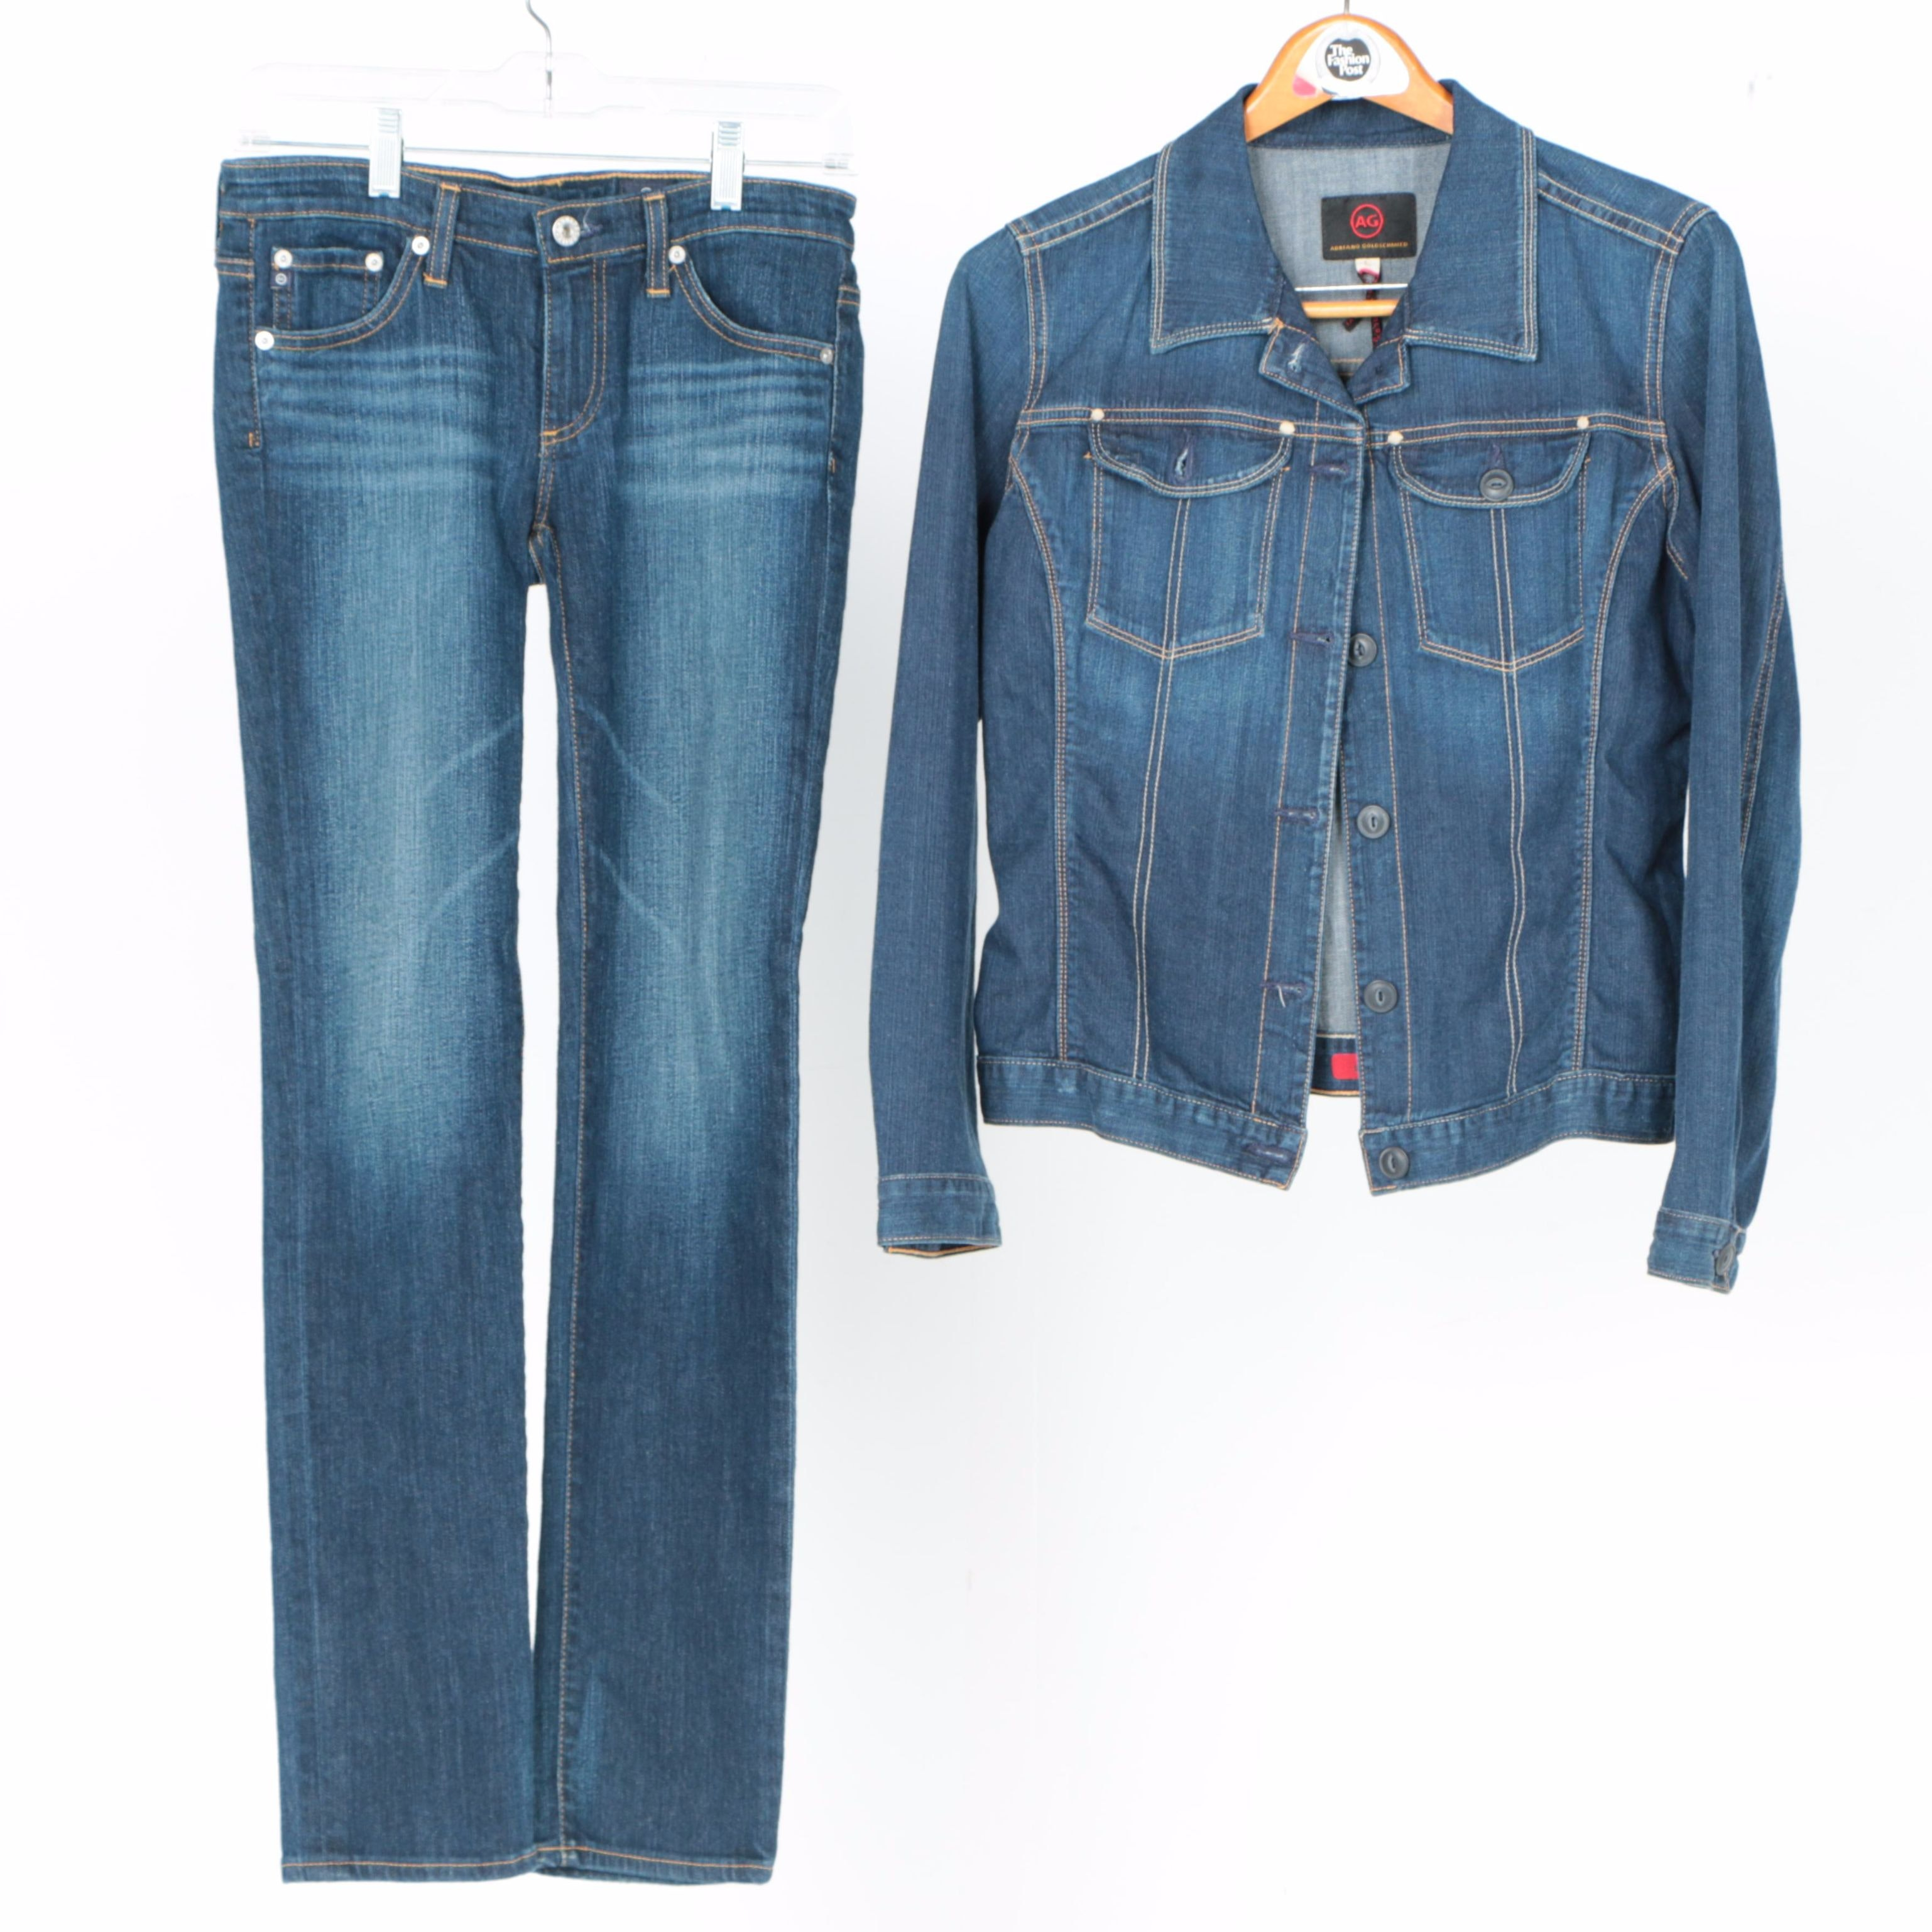 Adriano Goldschmied Denim Jacket and Jeans